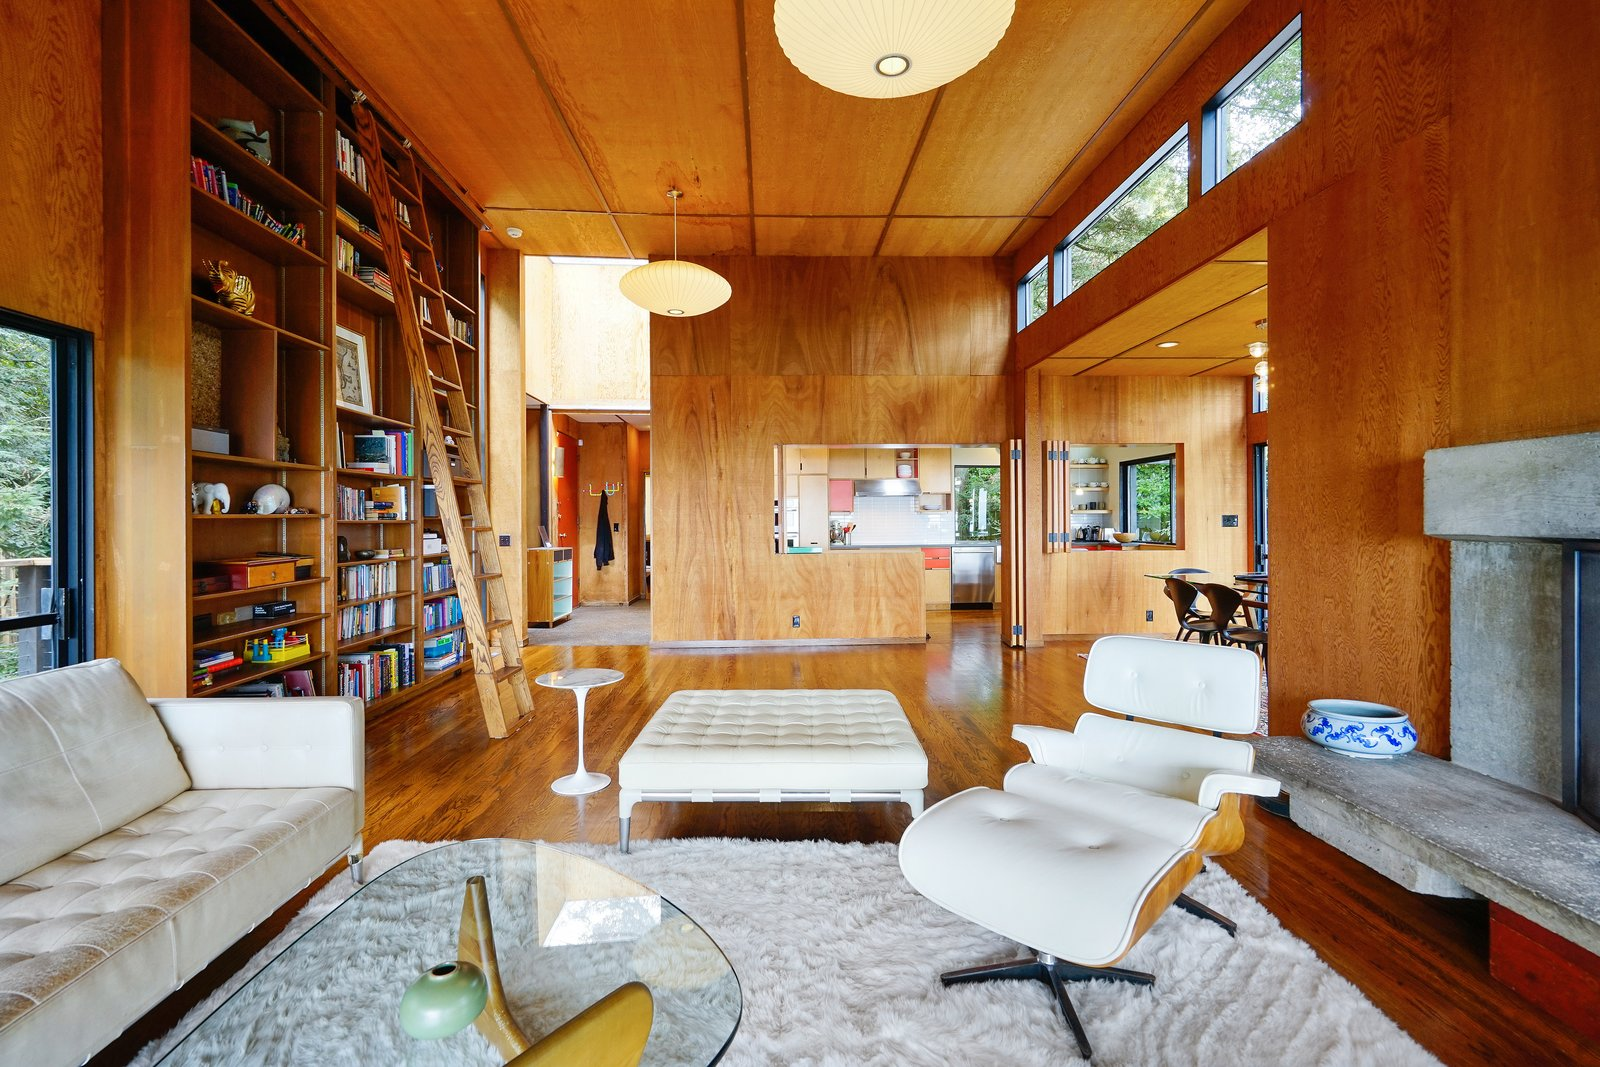 Living, Storage, Sofa, Ottomans, Coffee Tables, End Tables, Shelves, Standard Layout, Wood Burning, Chair, Medium Hardwood, Rug, Pendant, and Recessed The living room boasts original wood paneled ceiling and walls, and beautiful built-in bookshelves.  Living Ottomans Shelves Standard Layout Photos from This Knockout Midcentury in the Bay Area Will Run You $1.9M